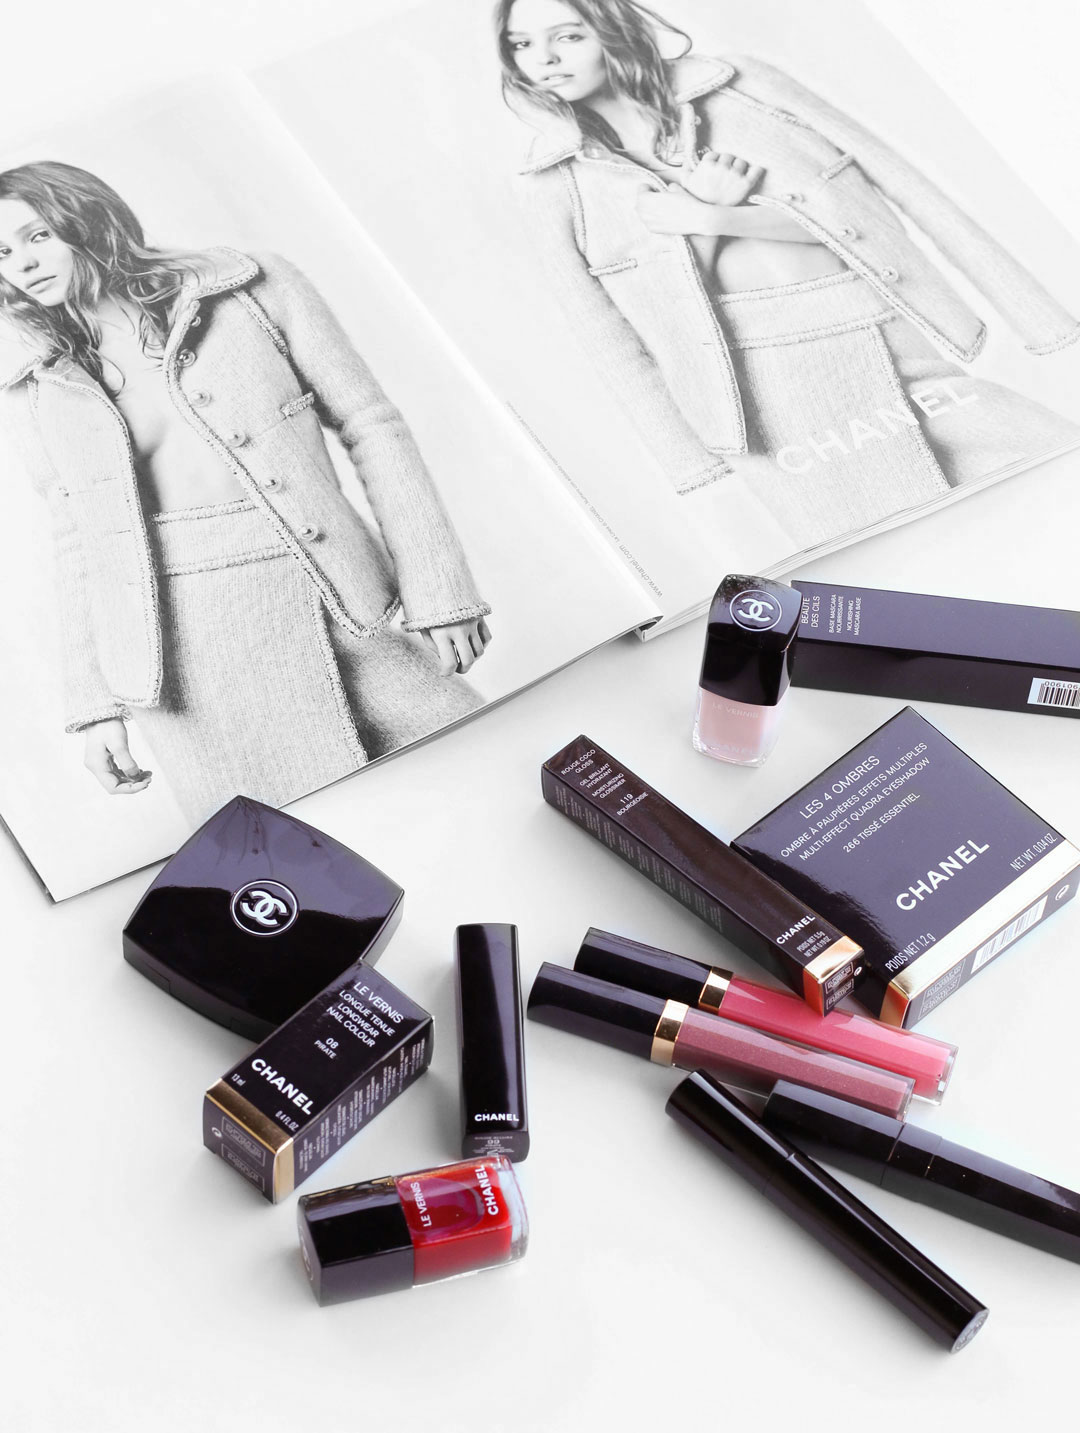 chanel-beauty-review-makeup-lipgloss-eyeshadow-flatlay-rouge-allure-lipstick-coco-gloss